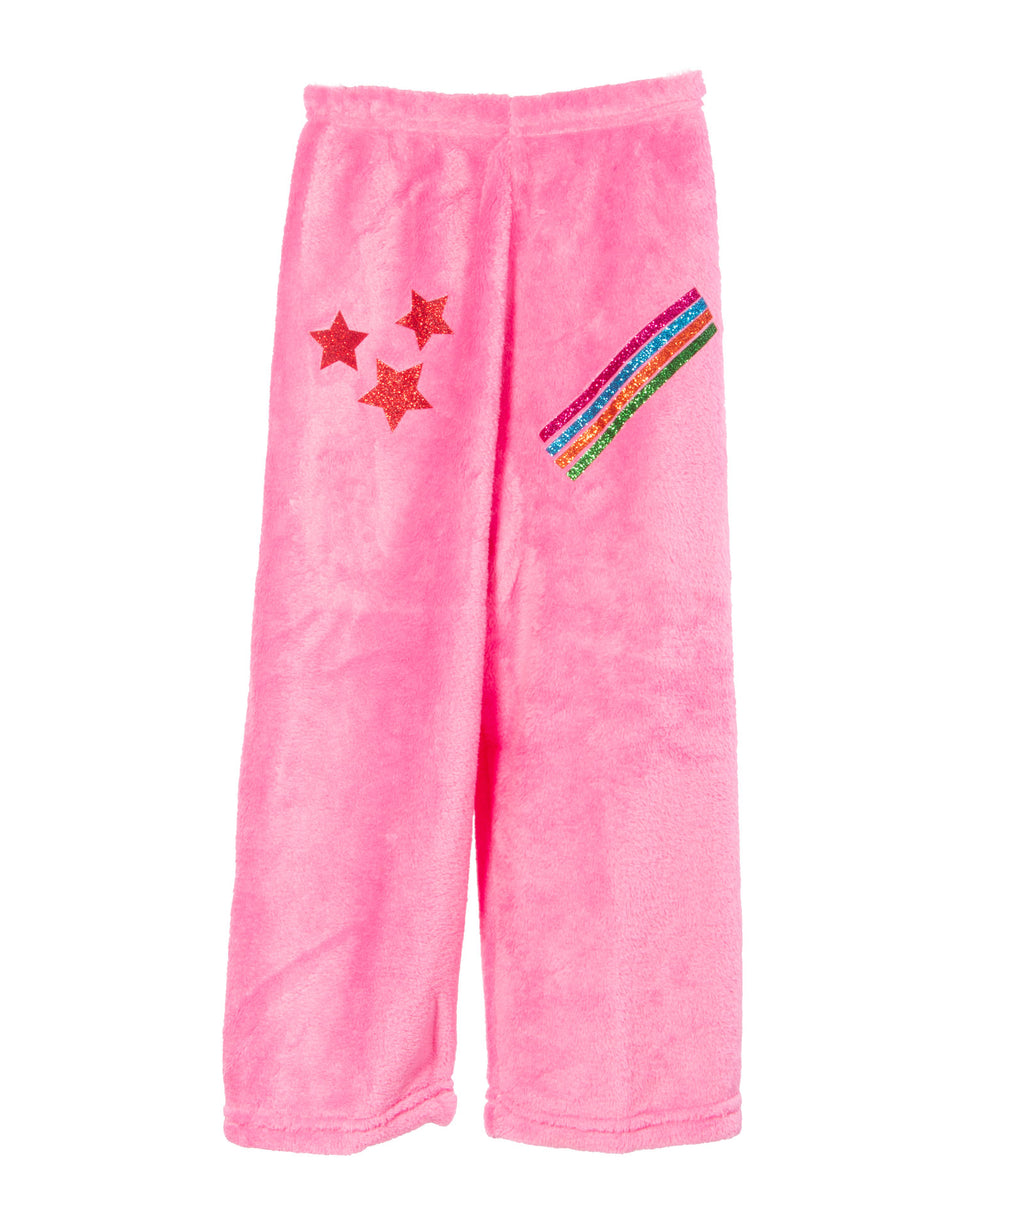 Made with Love and Kisses Rainbow Pink Pants